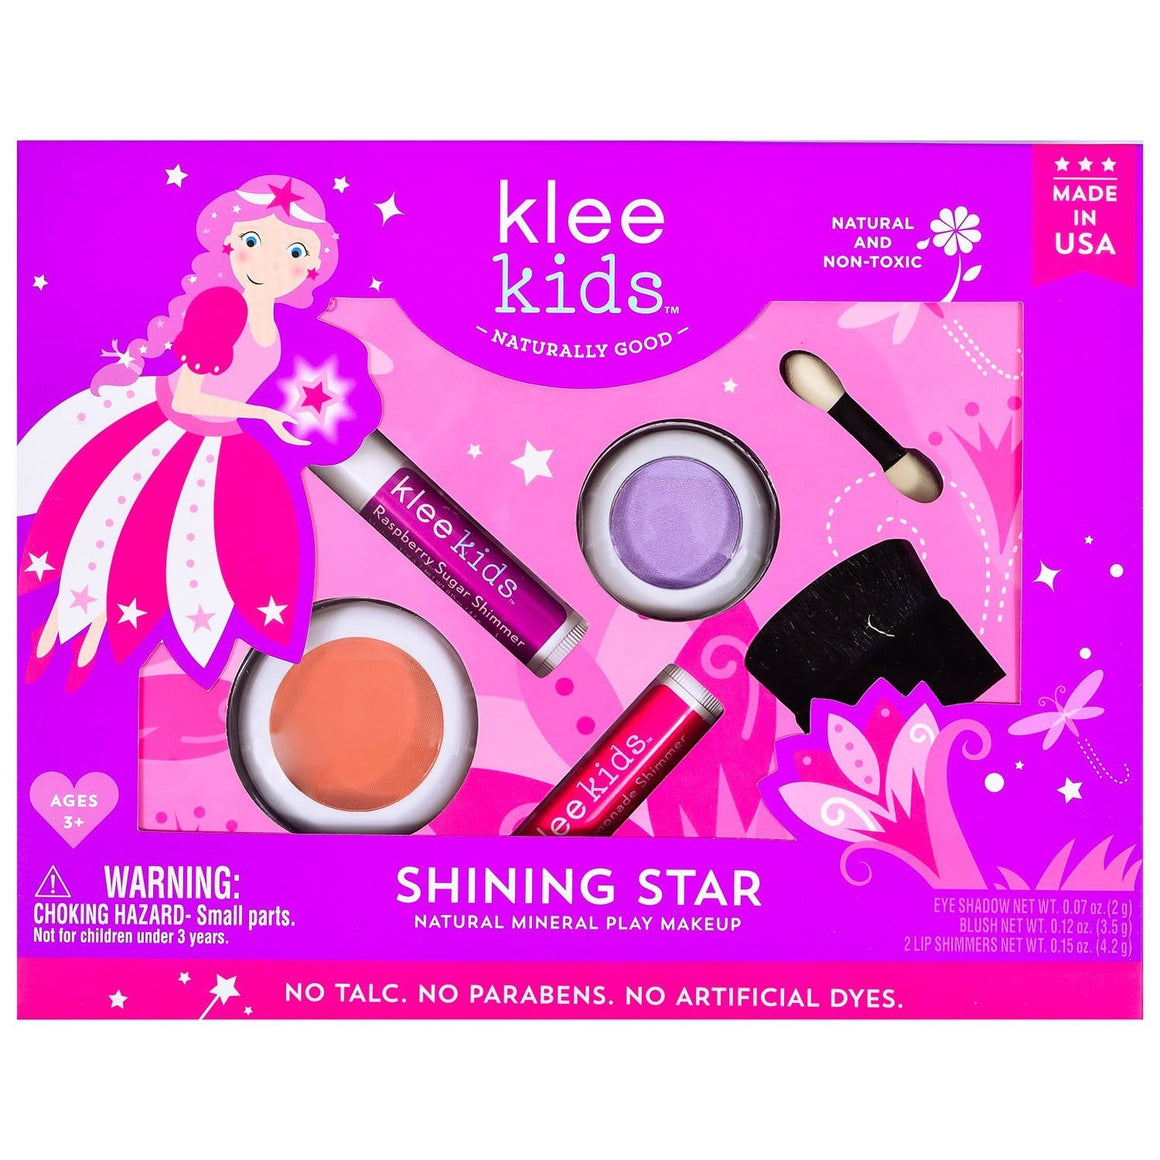 KLEE Naturals USA-SHINING STAR - KLEE KIDS NATURAL PRESSED POWDER MINERAL PLAY MAKEUP SET